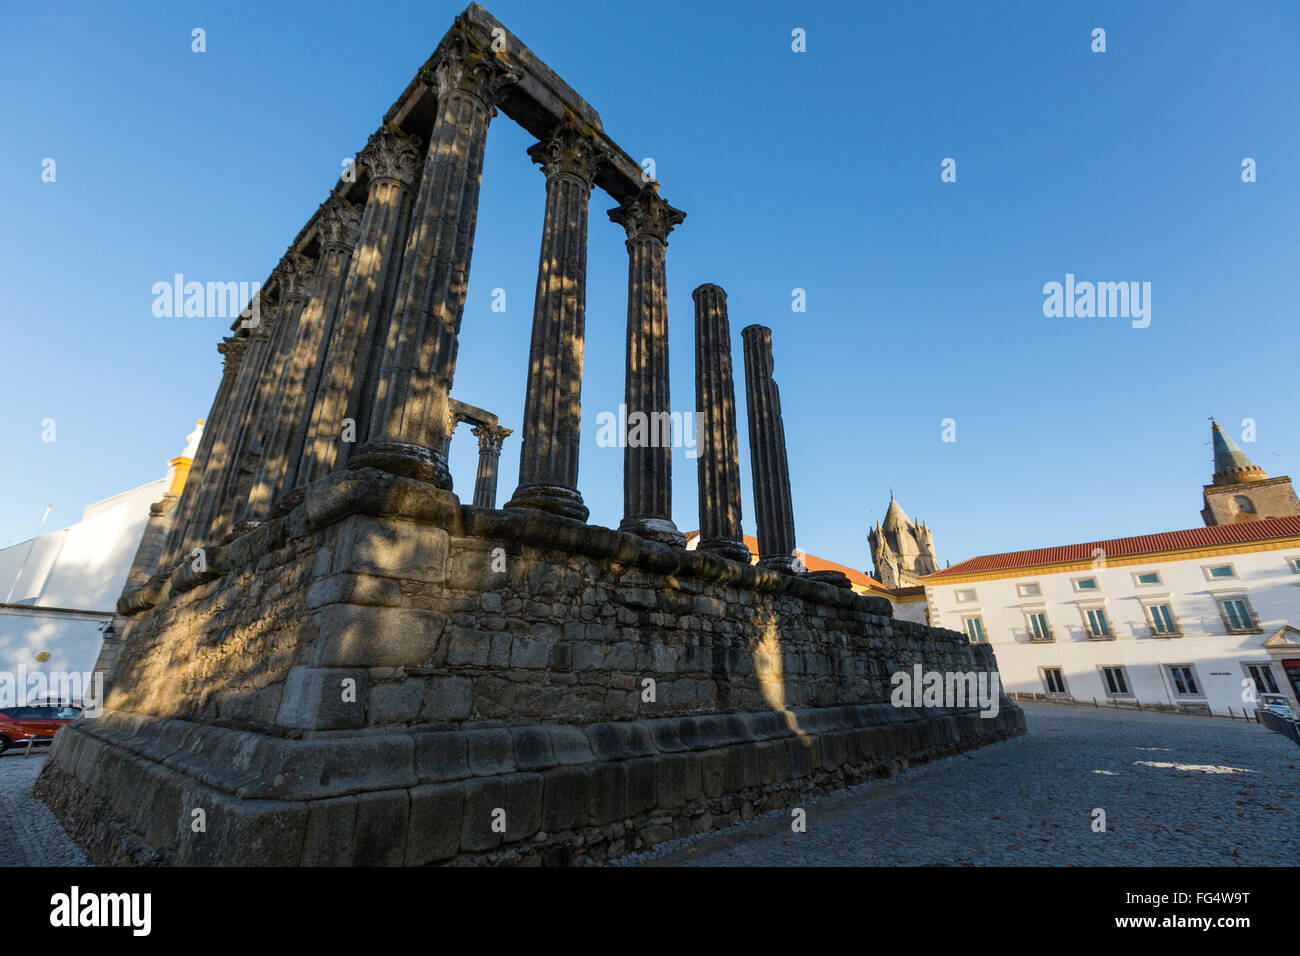 An oblique view of the remnants of the Roman Temple of Évora, also referred to as the Templo de Diana in Evora, - Stock Image